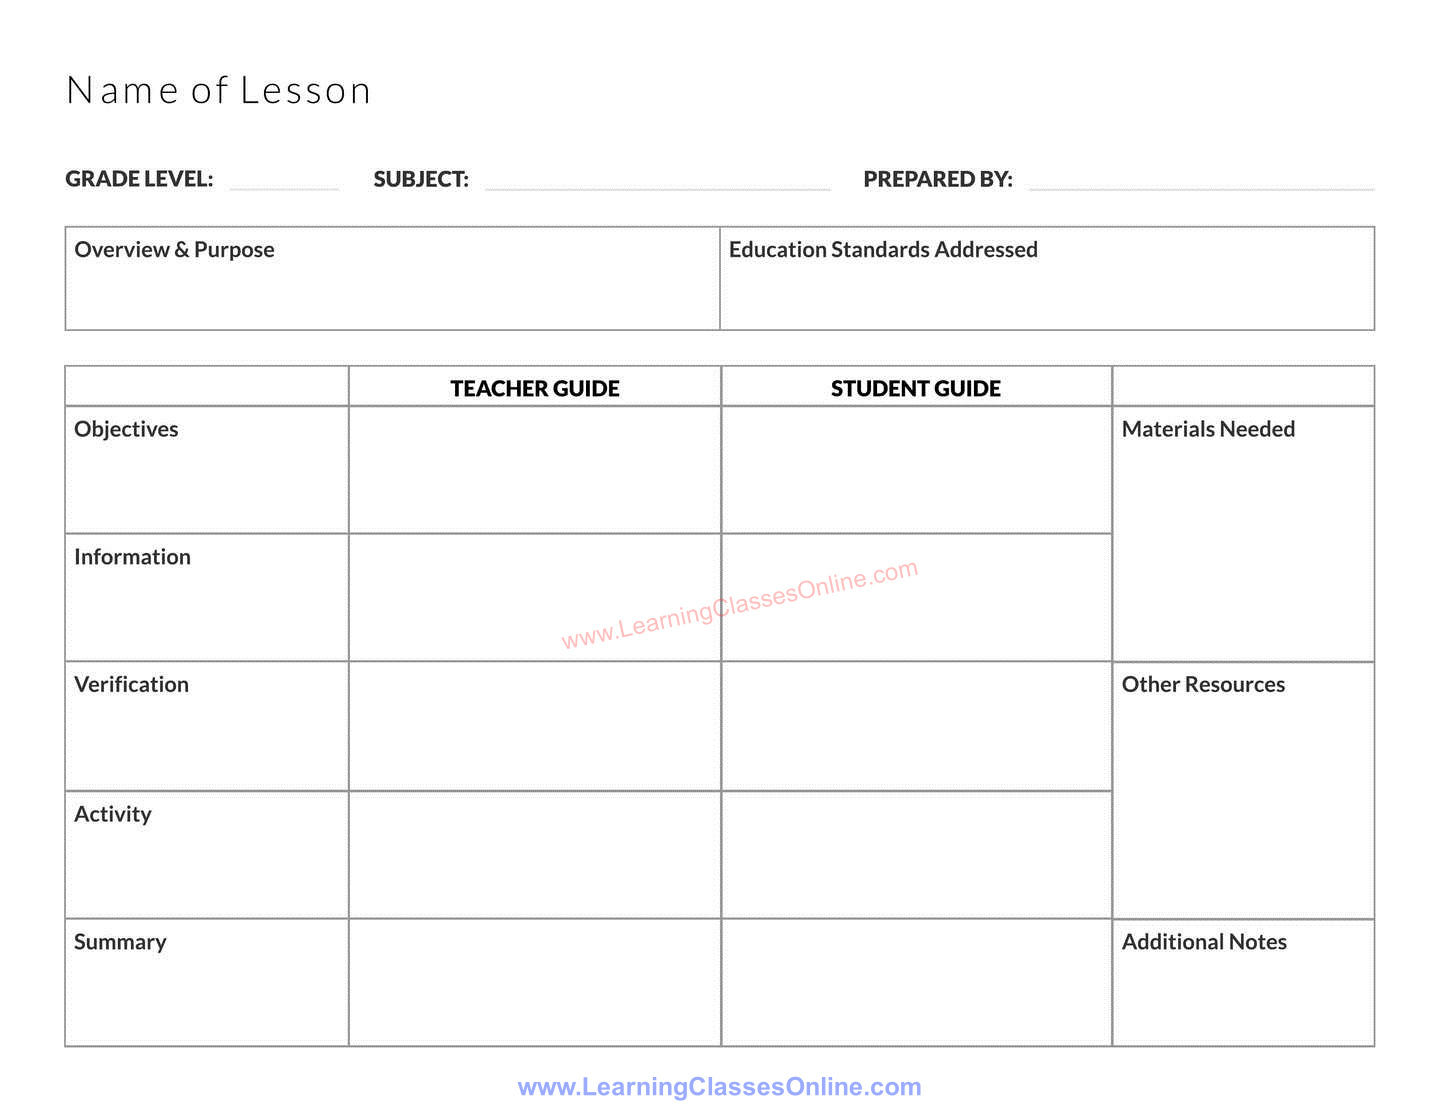 lesson plan template image free download for kindergarden, middle, elementary and high school teachers,free printable and editable lesson plan template for teachers in english